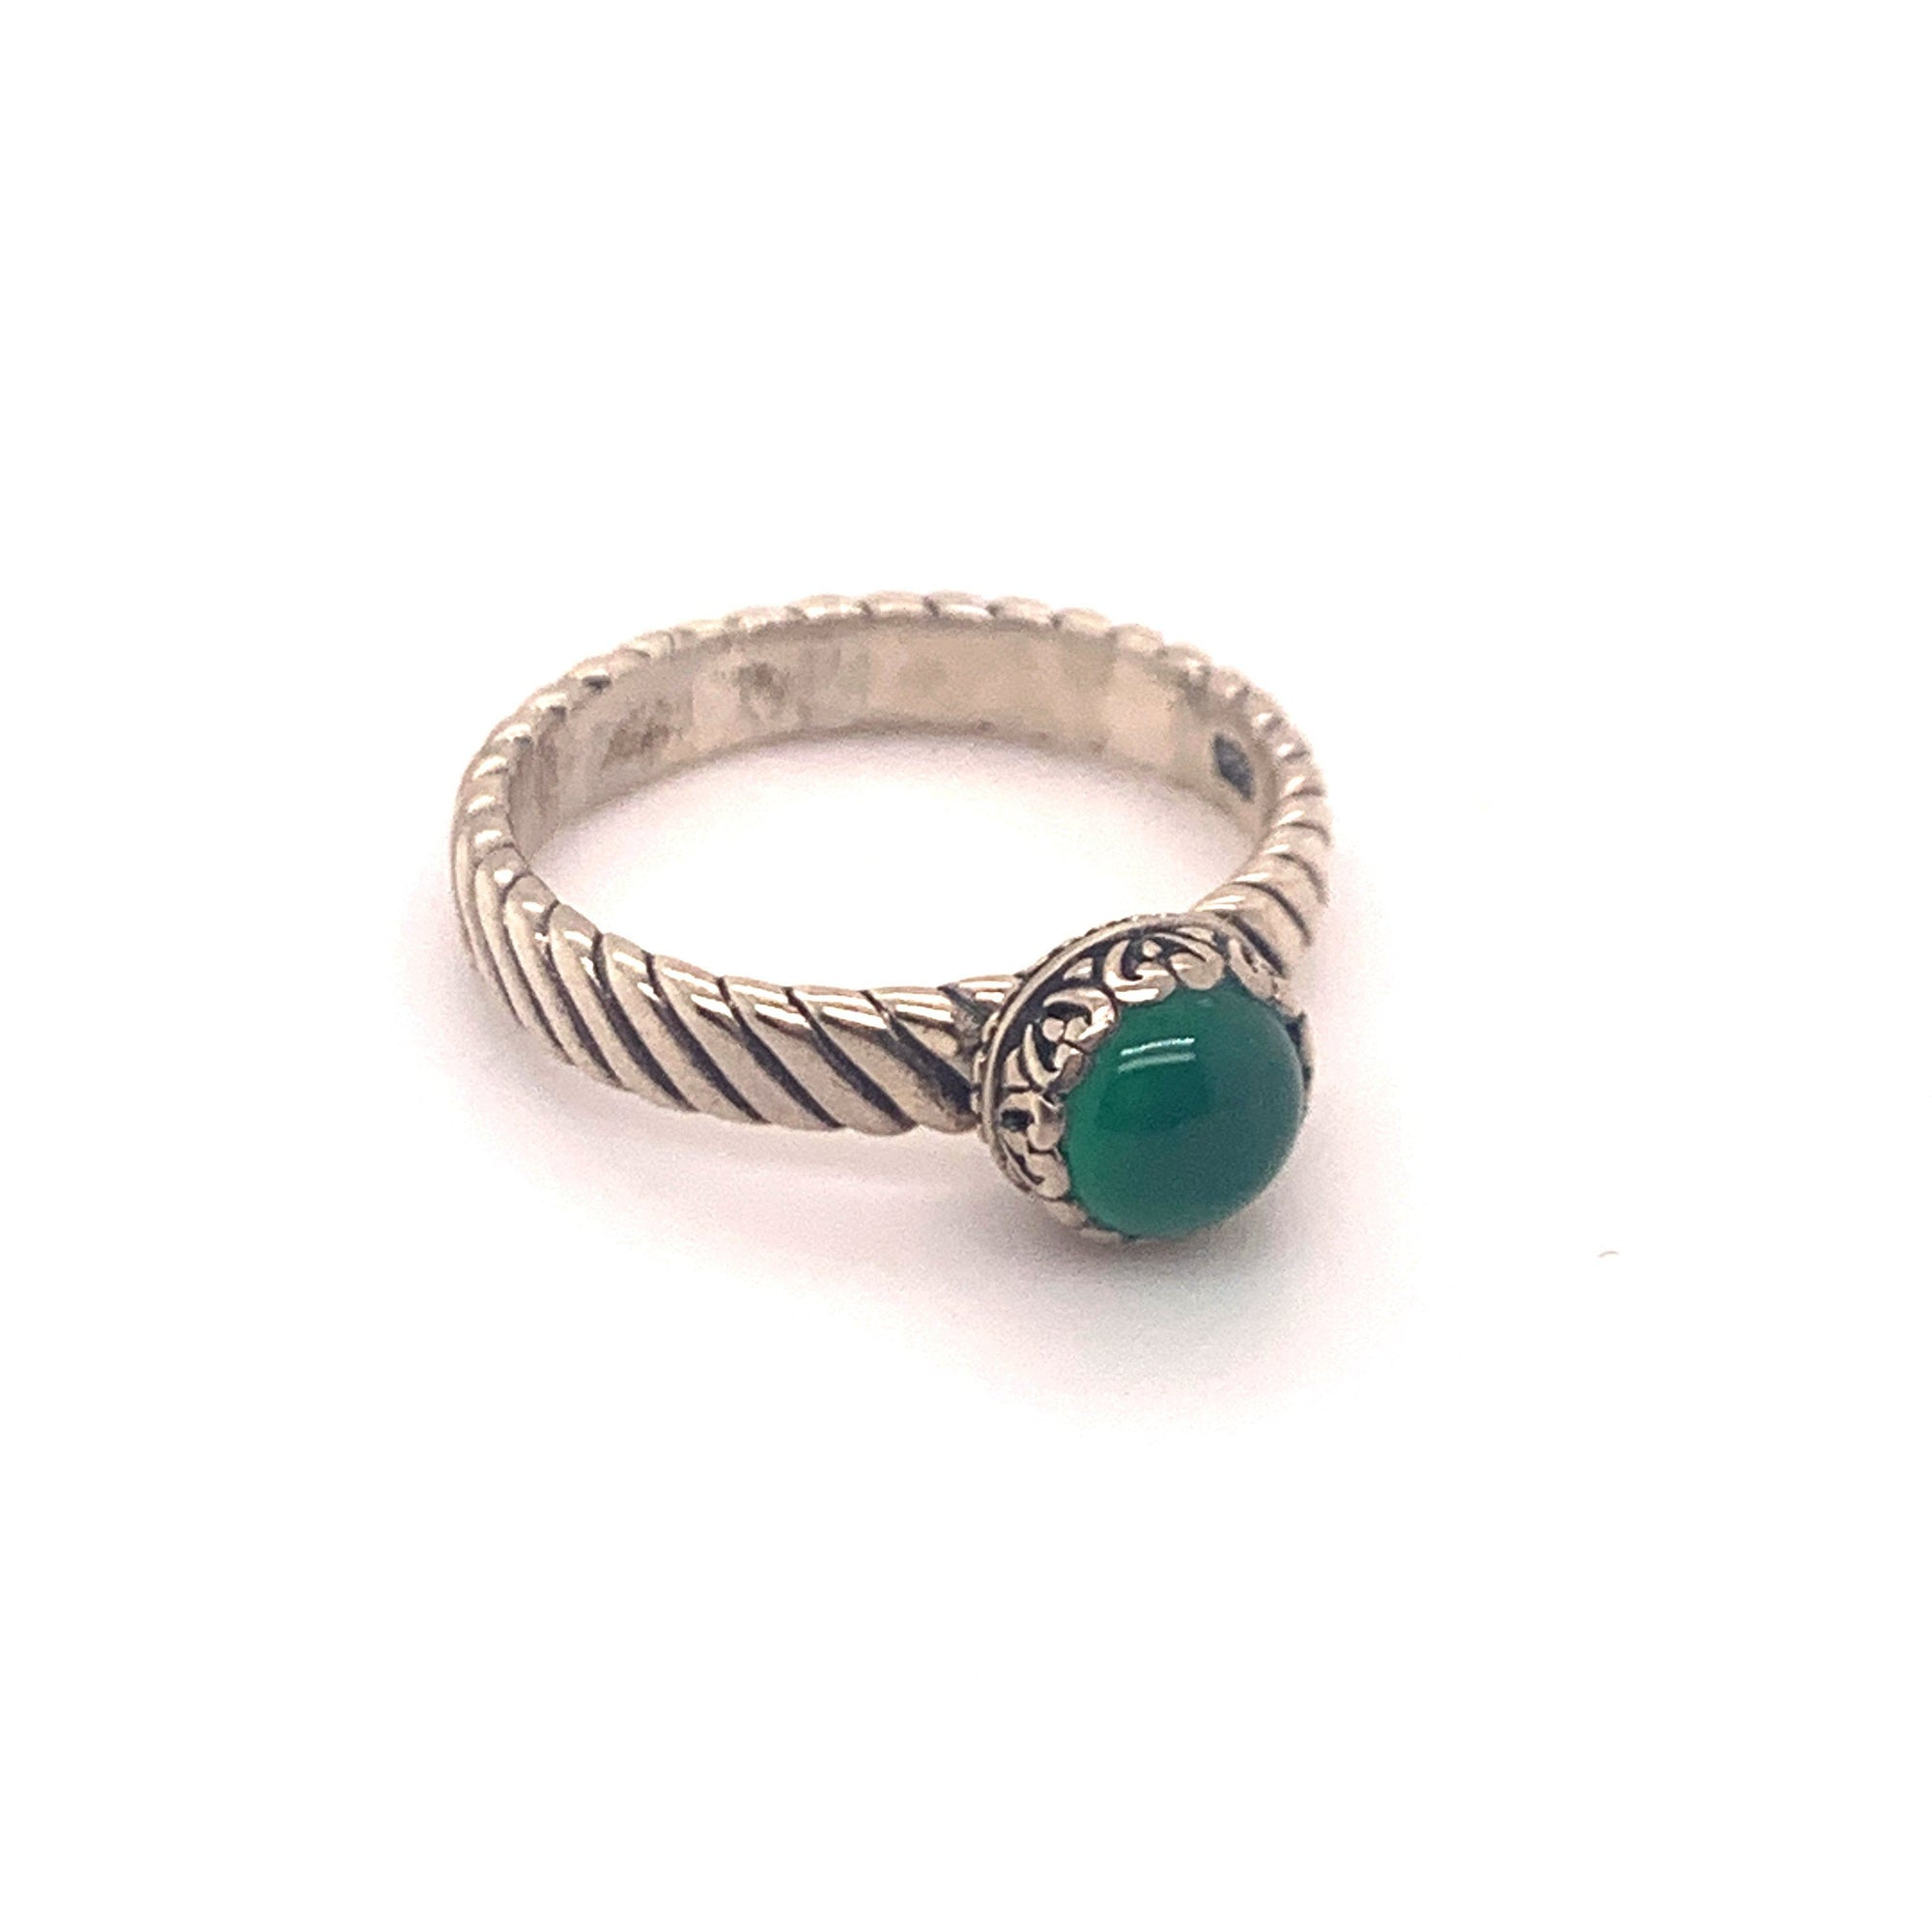 Samuel B Sterling Silver Green Onyx Stackable Birthstone Ring Mullen Brothers 26,266 likes · 108 talking about this. samuel b sterling silver green onyx stackable birthstone ring